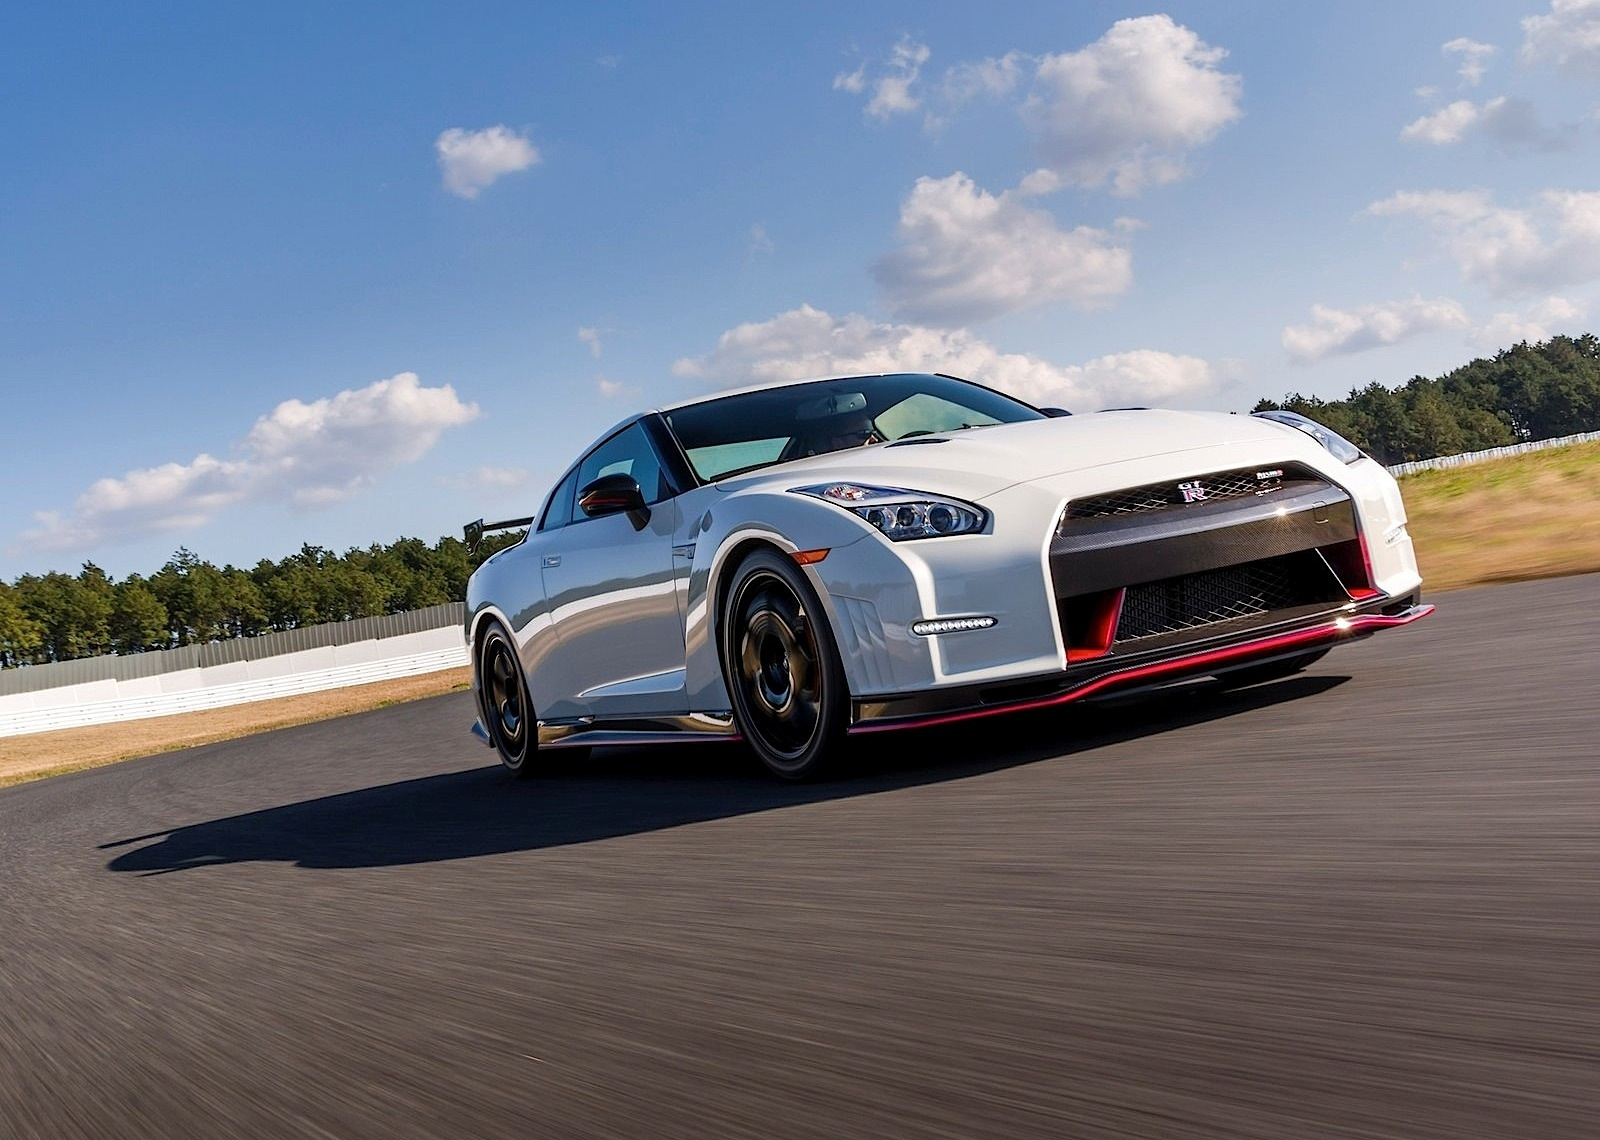 2017 nissan gt r nismo priced in europe from 184 950 149 995 autoevolution. Black Bedroom Furniture Sets. Home Design Ideas